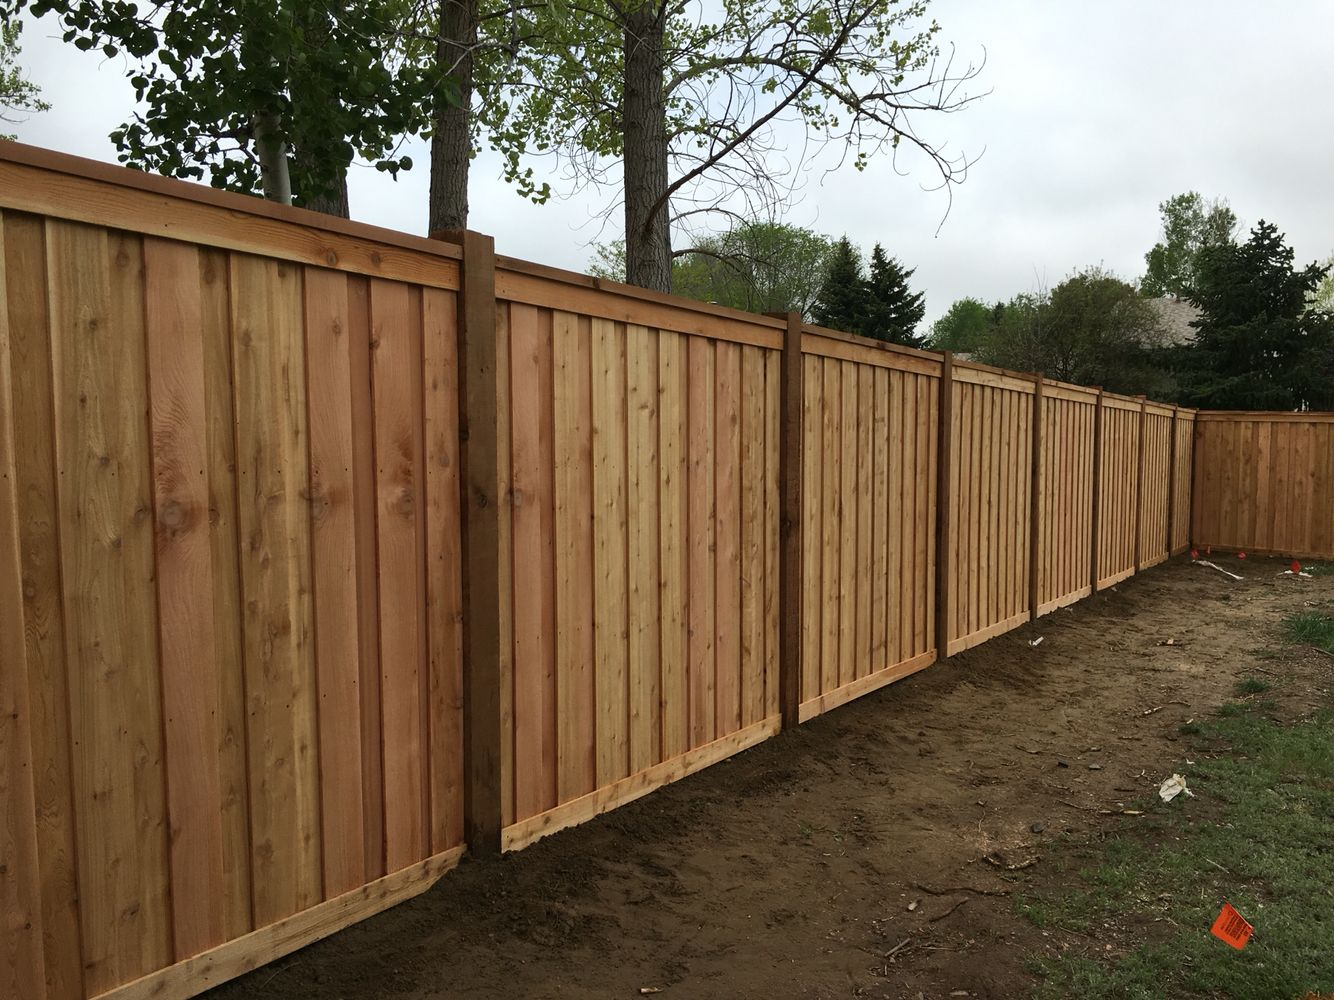 7 39 tall cedar privacy fence with 6x6 posts 2x6 top cap 6 for Wood privacy fence ideas